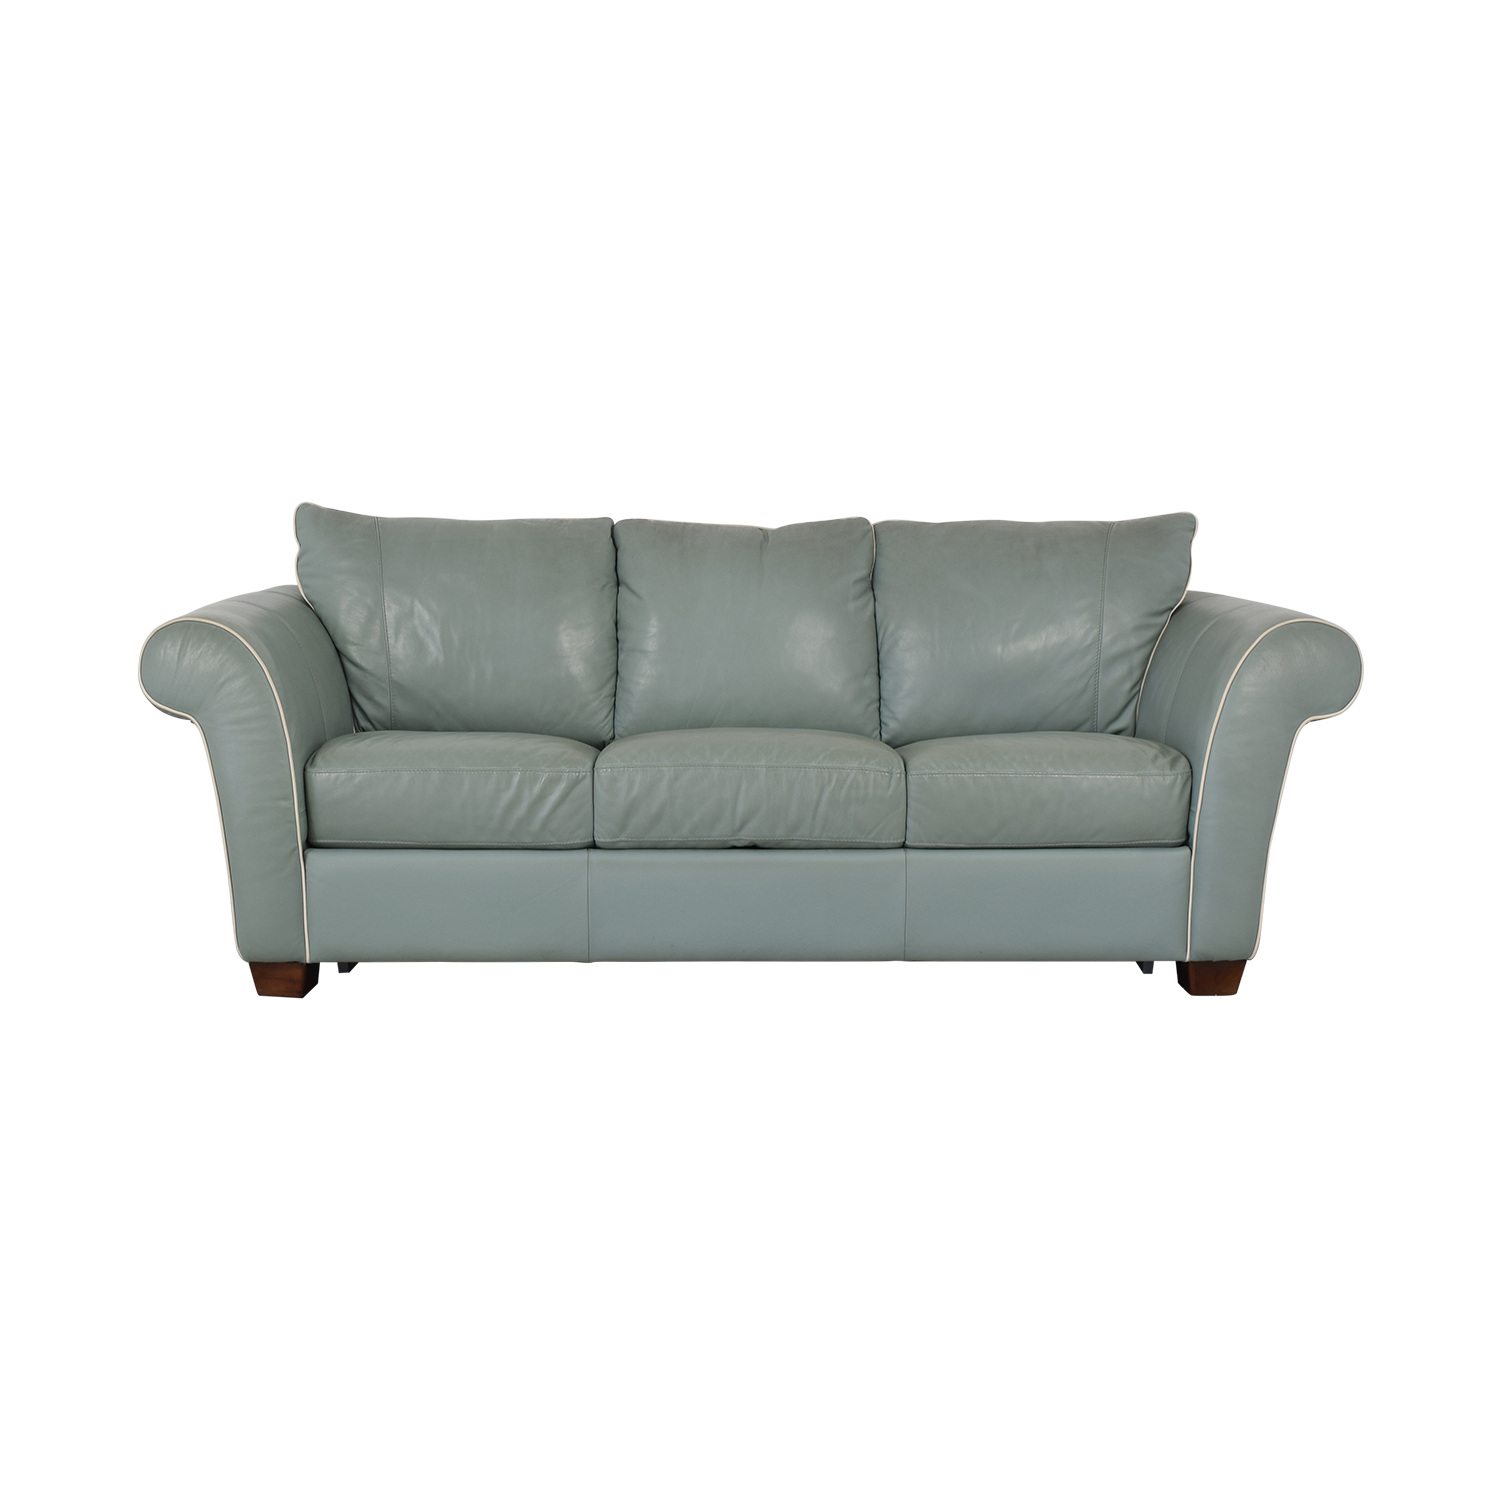 Italsofa Queen Sleeper Sofa / Sofas